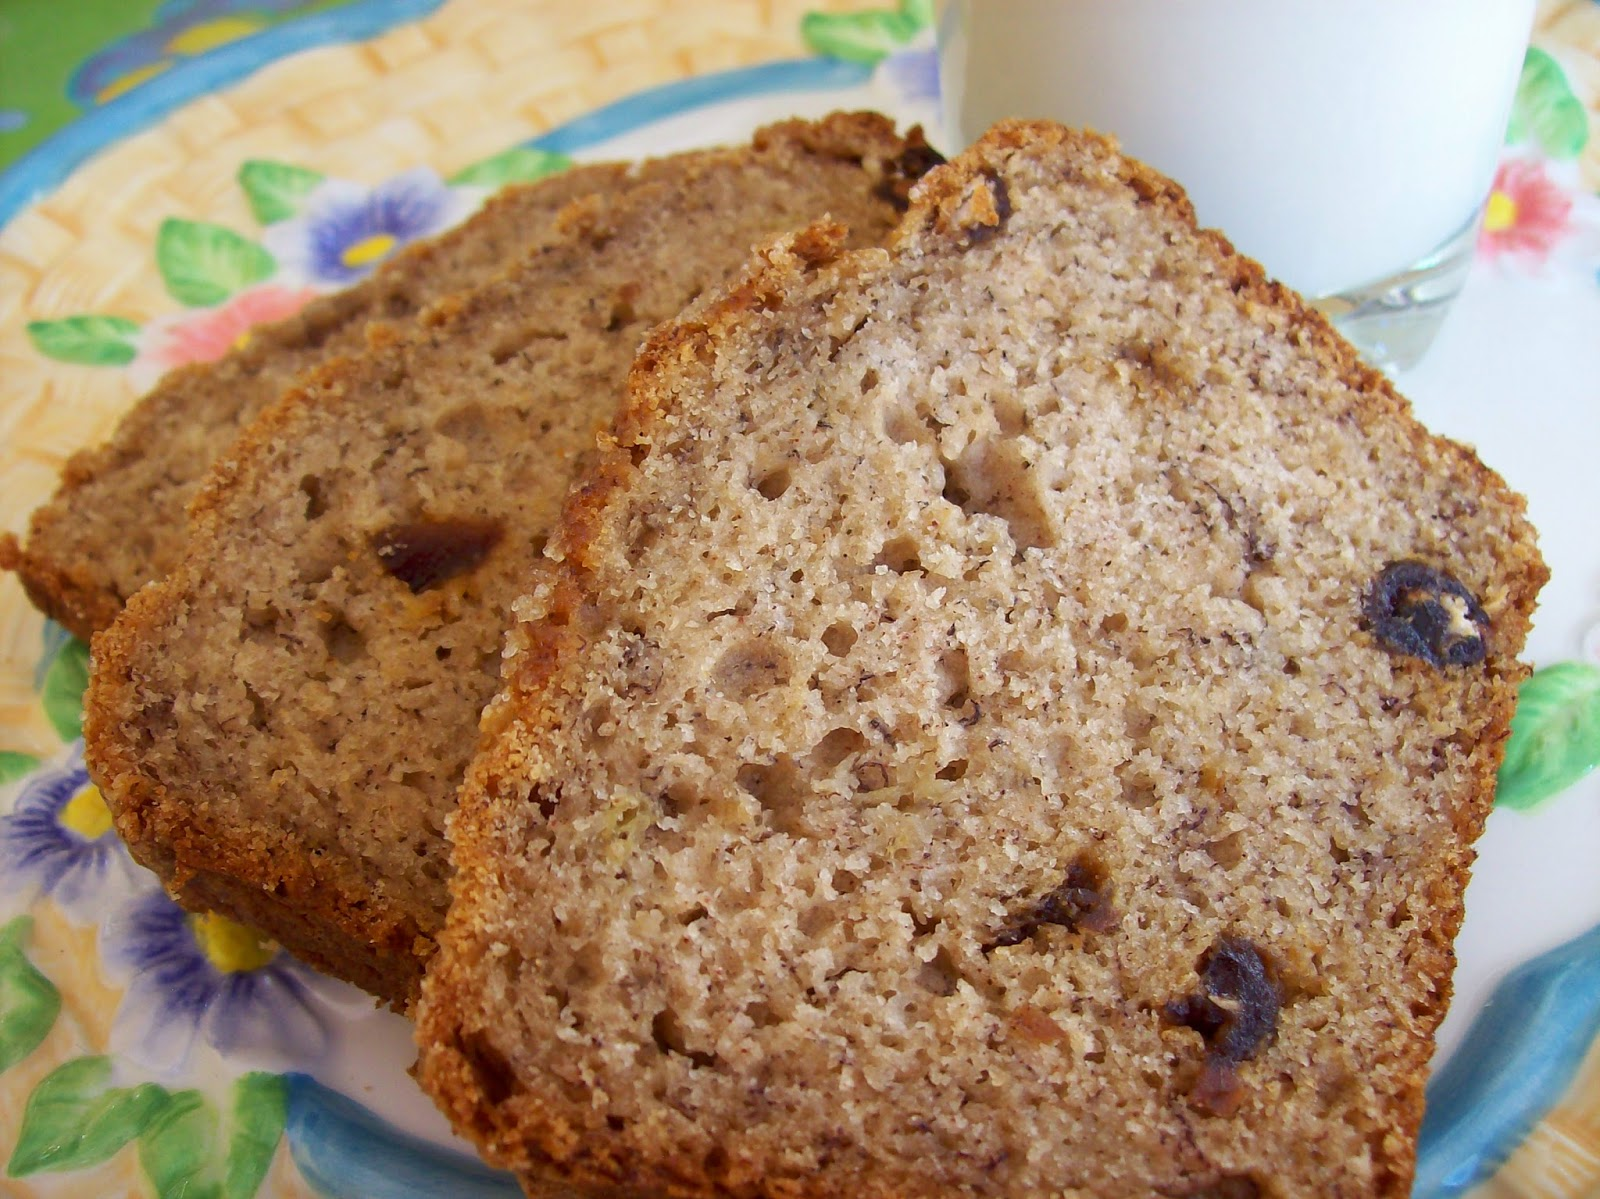 Slices of Banana Date Bread